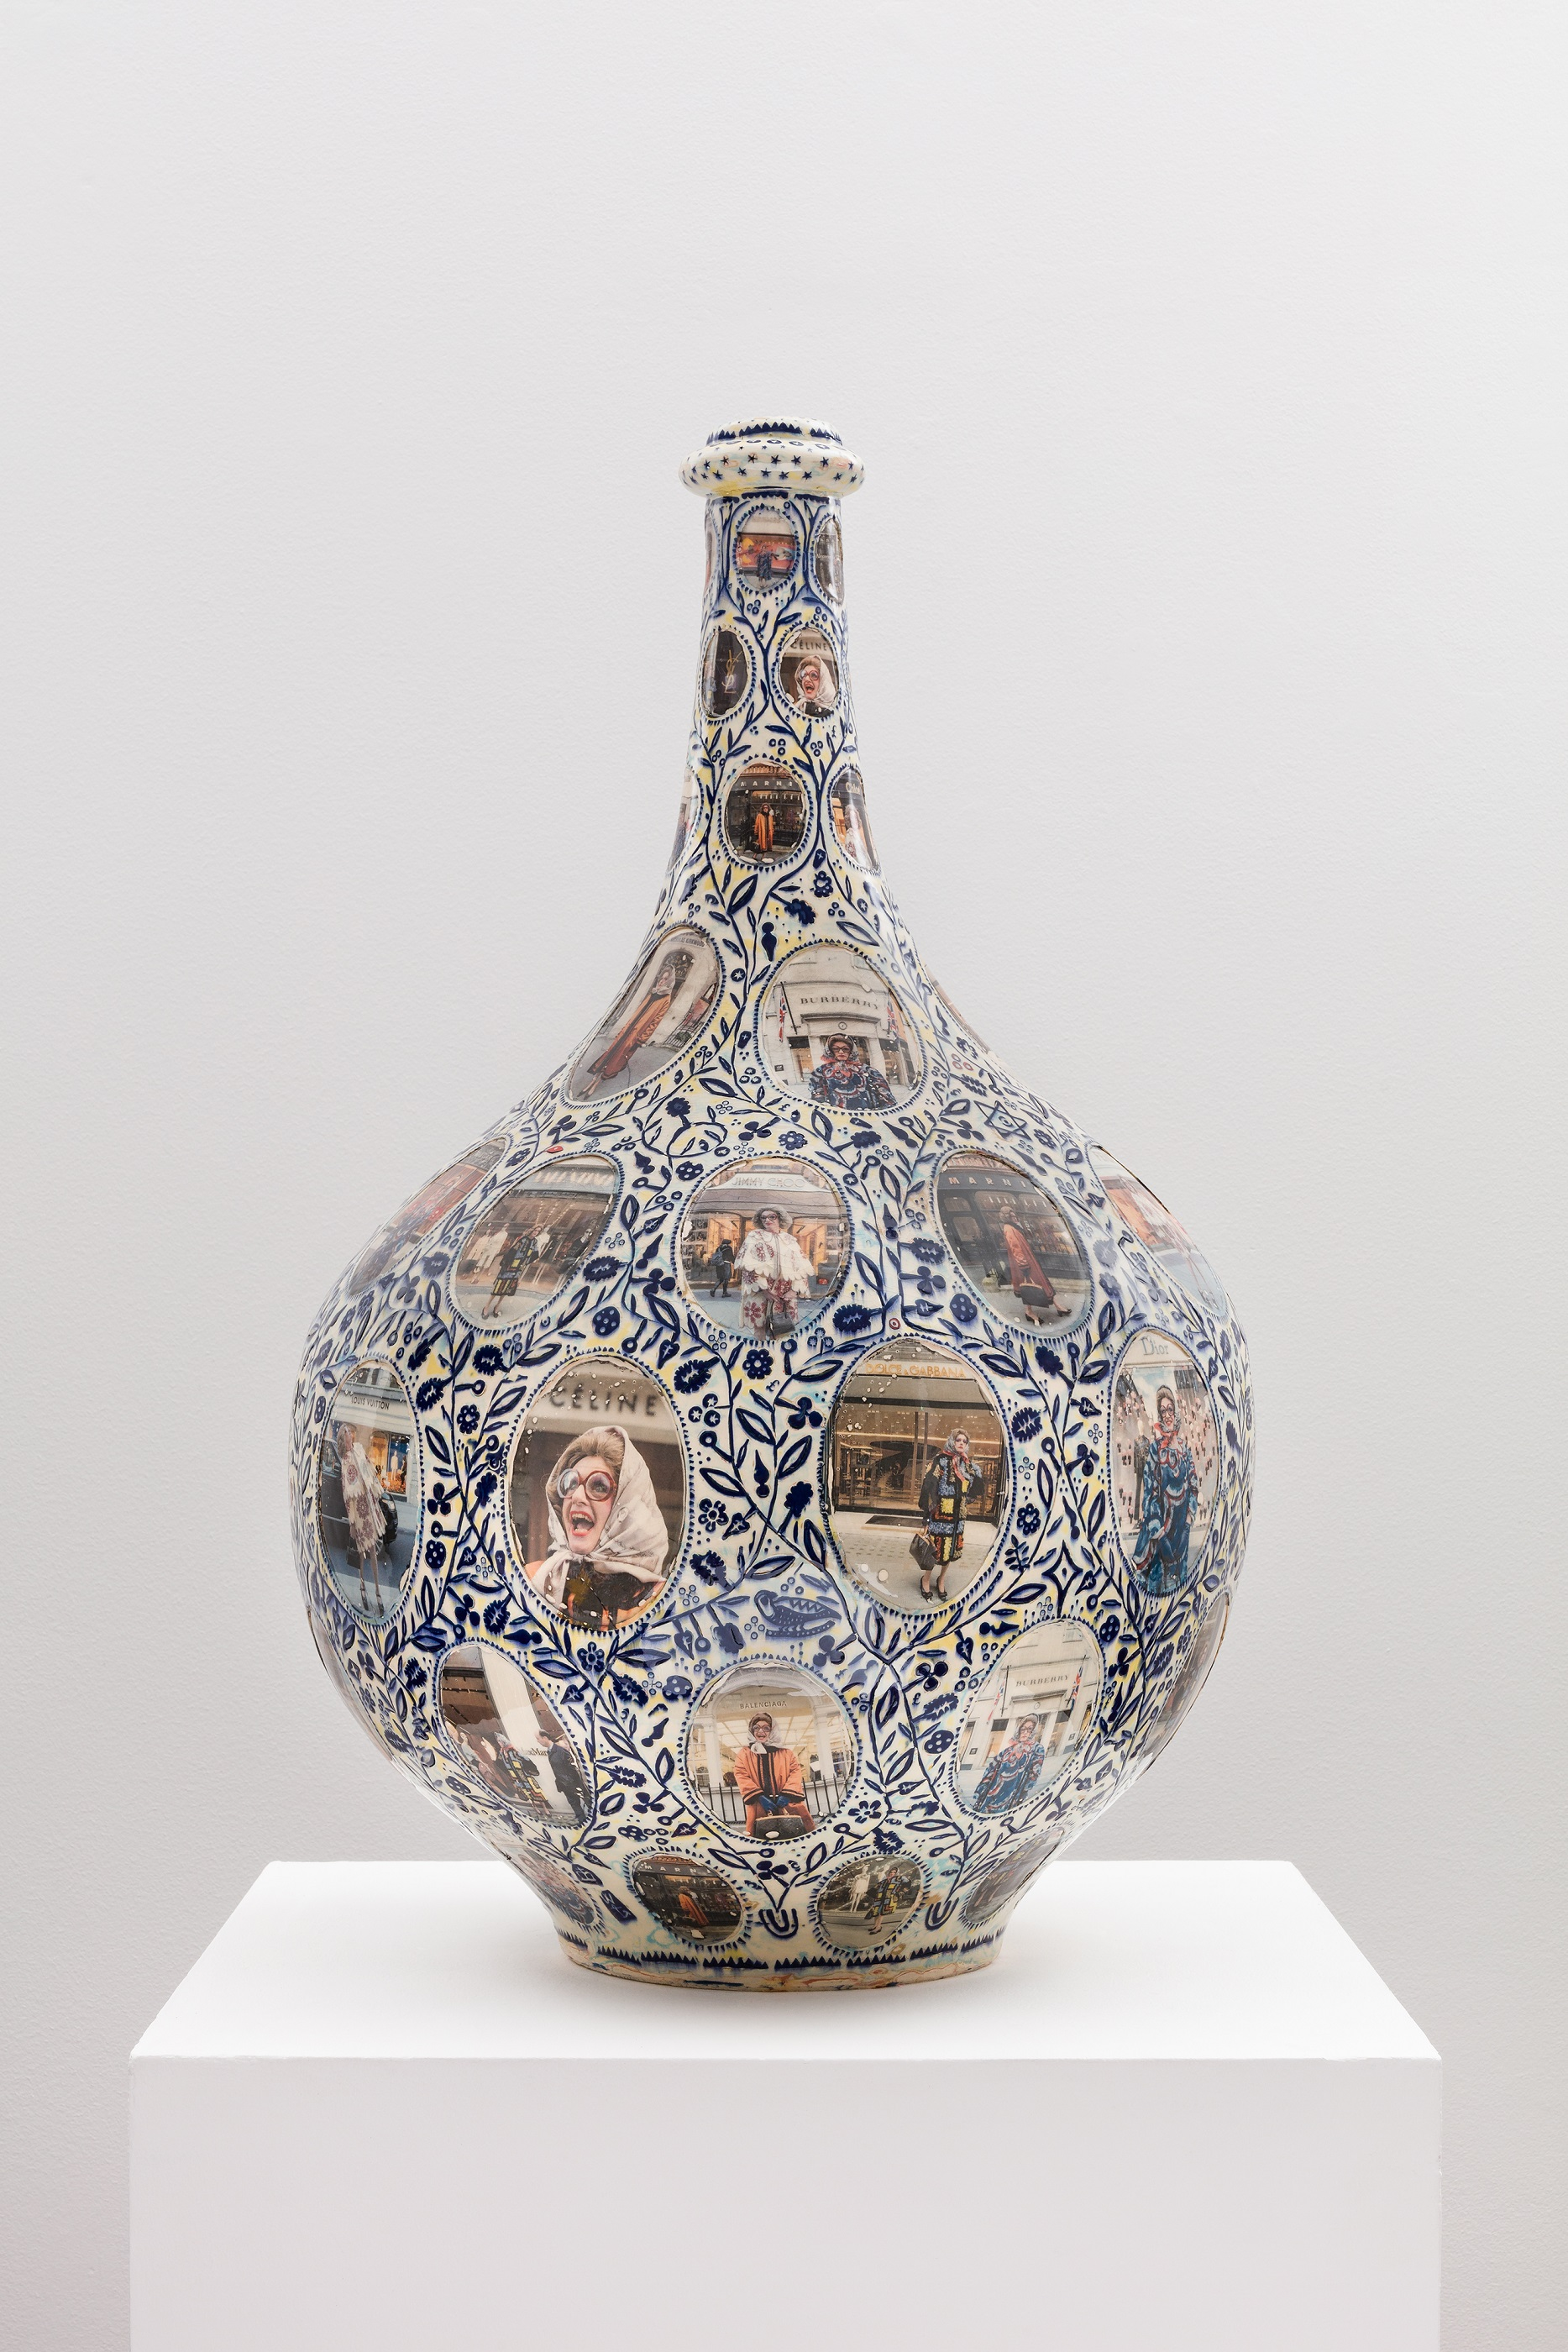 Grayson Perry 'Shopping for Meaning', 2019. Glazed ceramic. 81 x 48 x 48 cm. © Grayson Perry/ Courtesy the artist and Victoria Miro, London/Venice